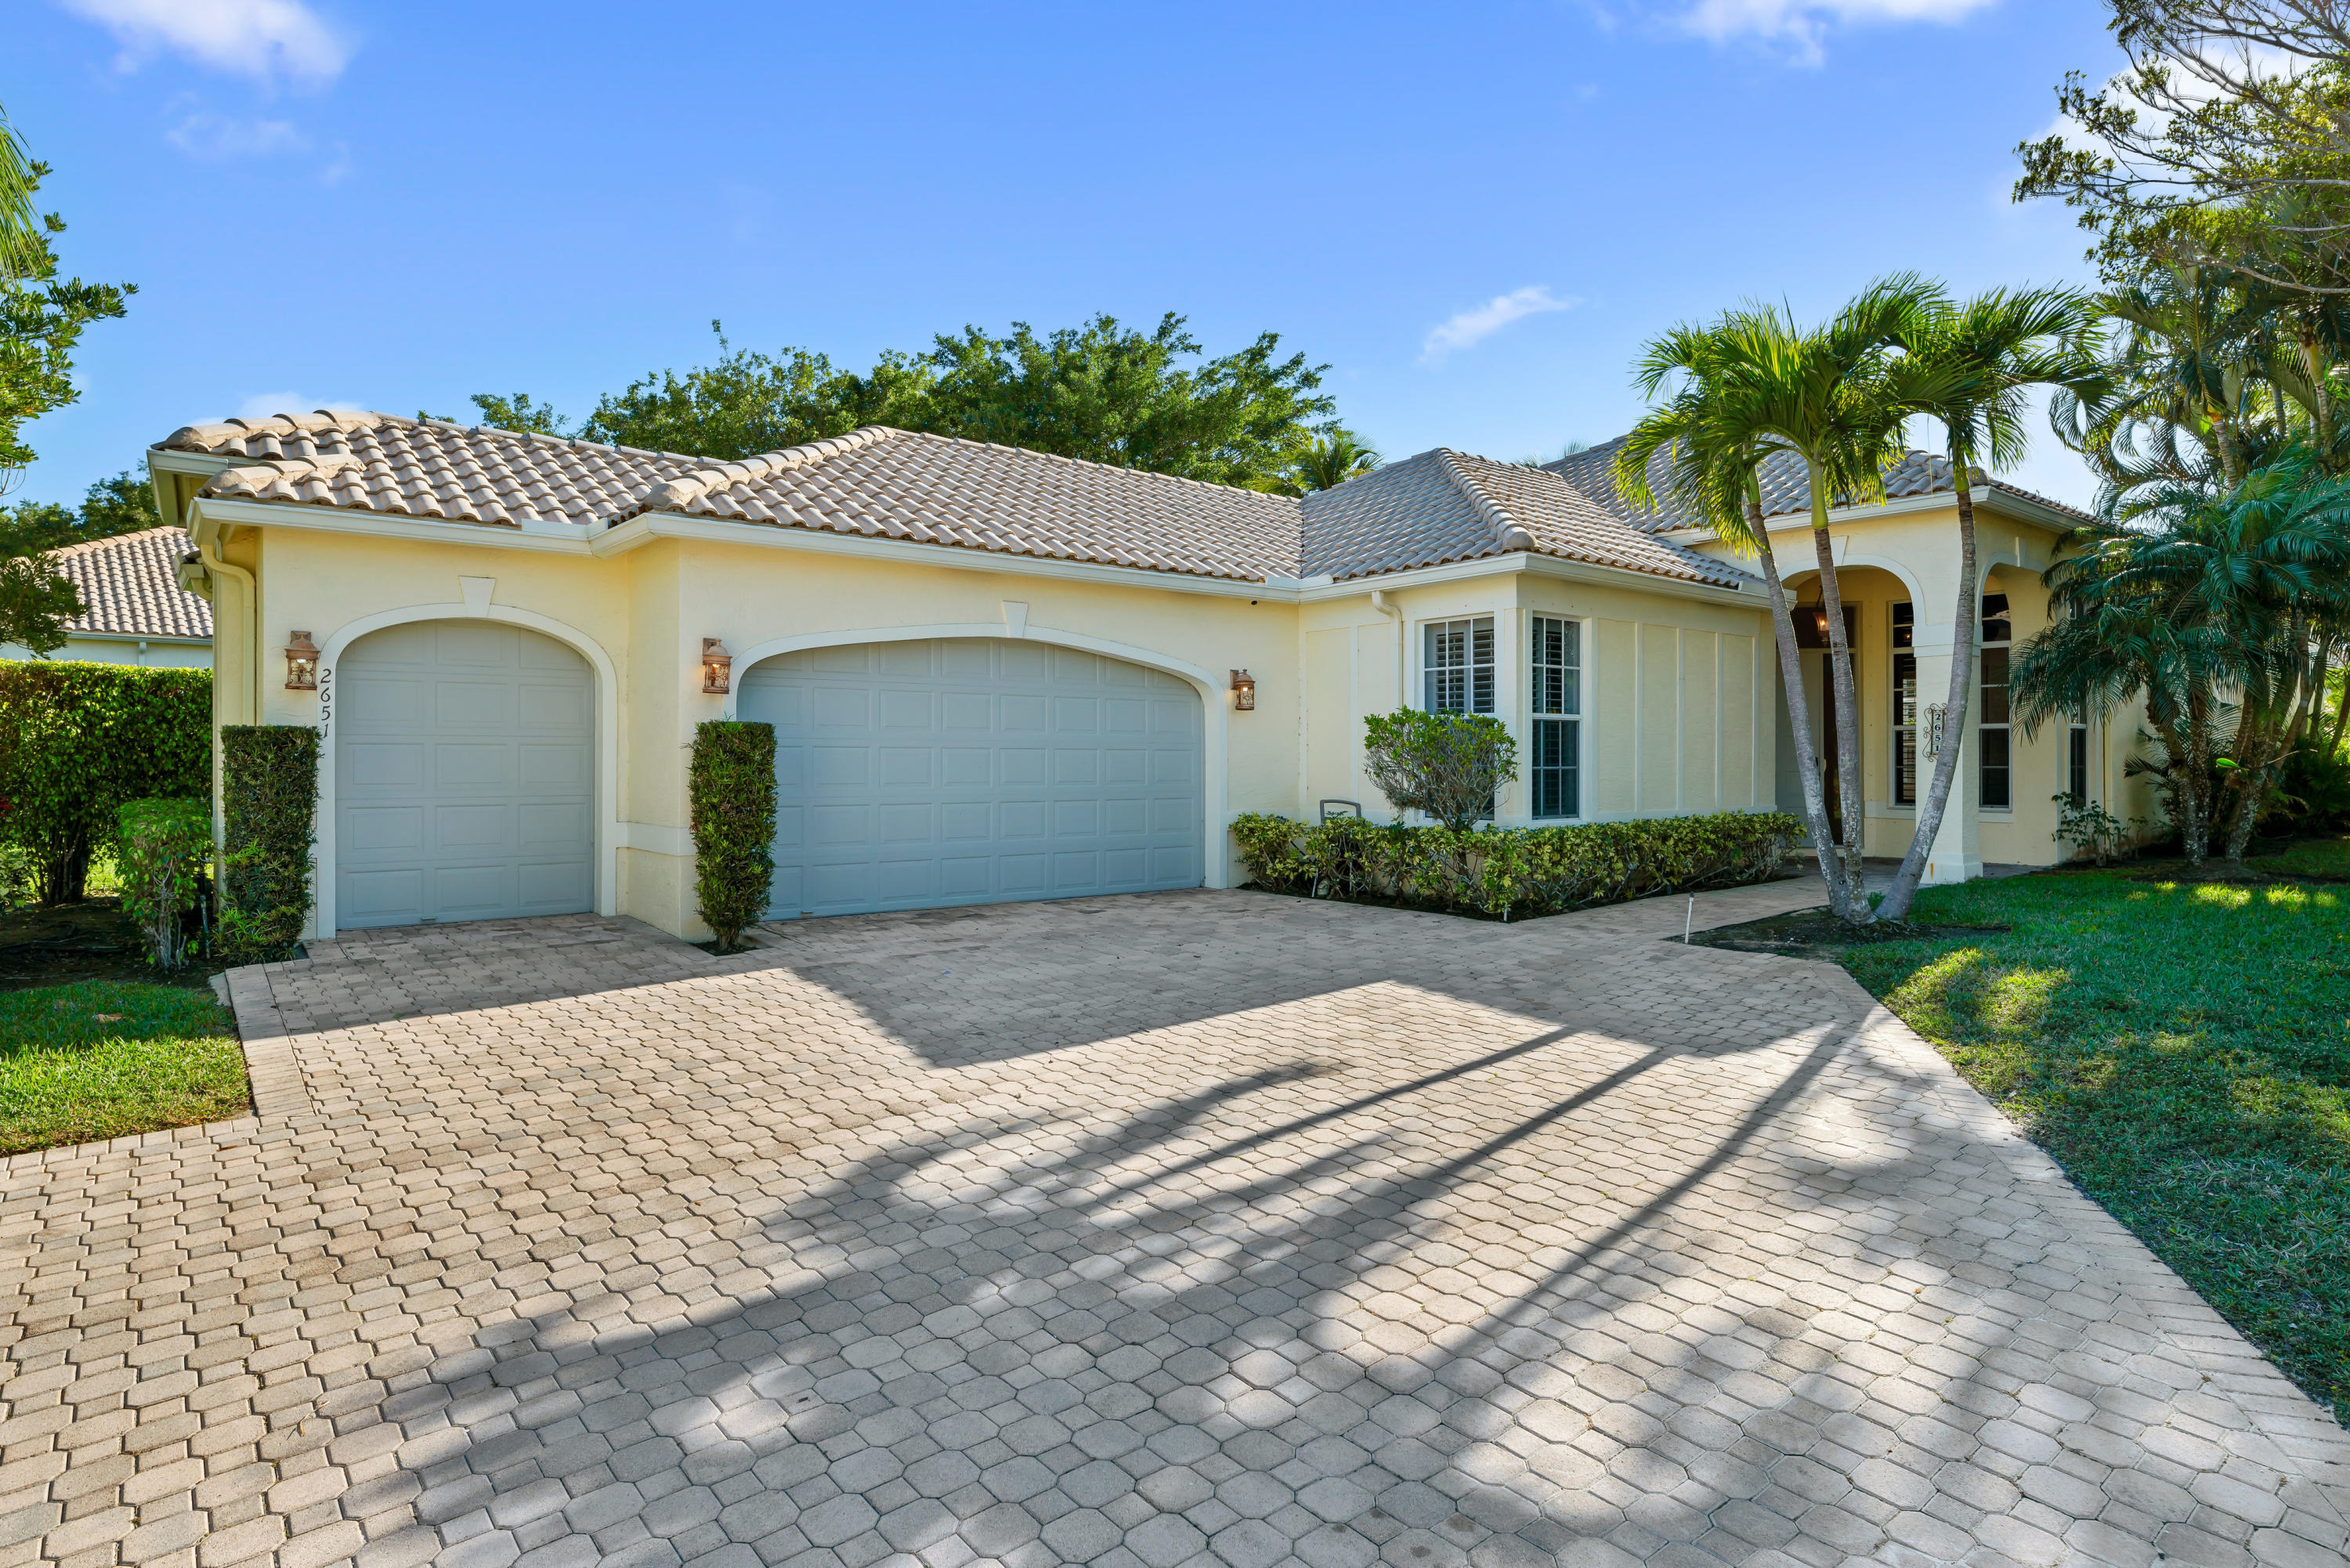 2651 Players Court, Wellington, Florida 33414, 3 Bedrooms Bedrooms, ,3.1 BathroomsBathrooms,Single Family,For Sale,Palm Beach Polo & CC,Players,RX-10554687